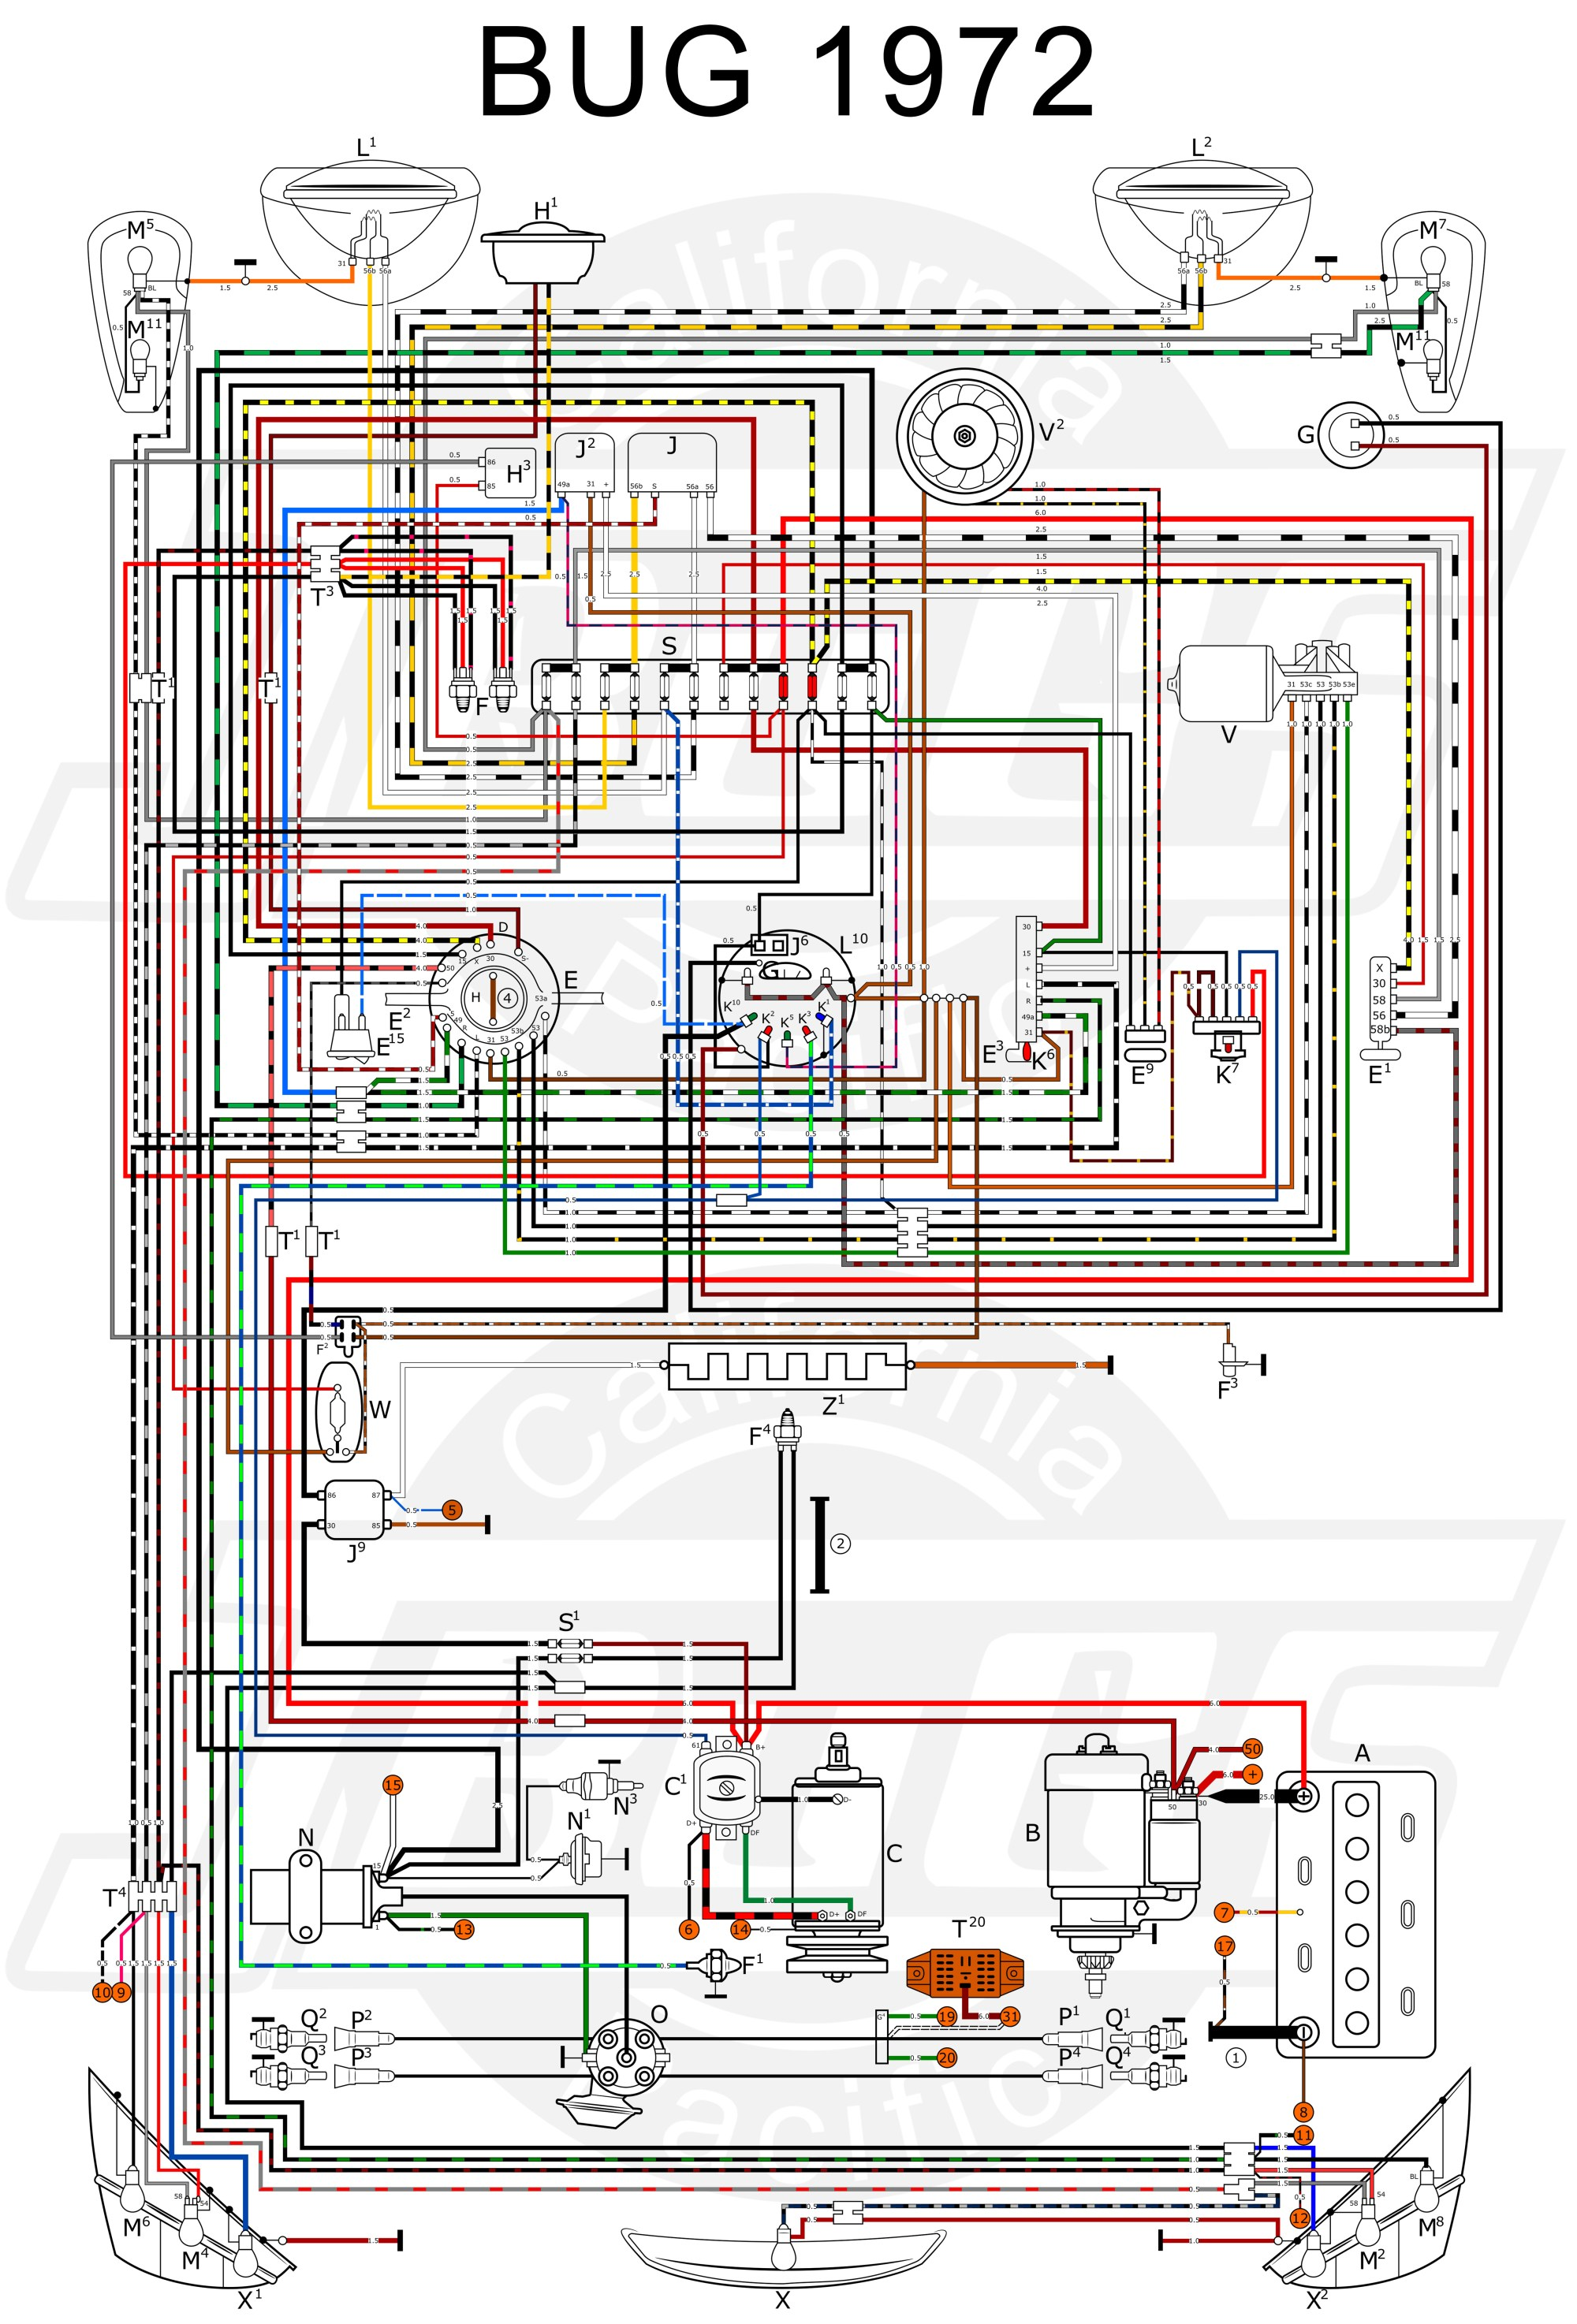 hight resolution of colored wiring diagram 72 chevy pickup free car wiring diagrams rh ethermag co 1967 chevy impala